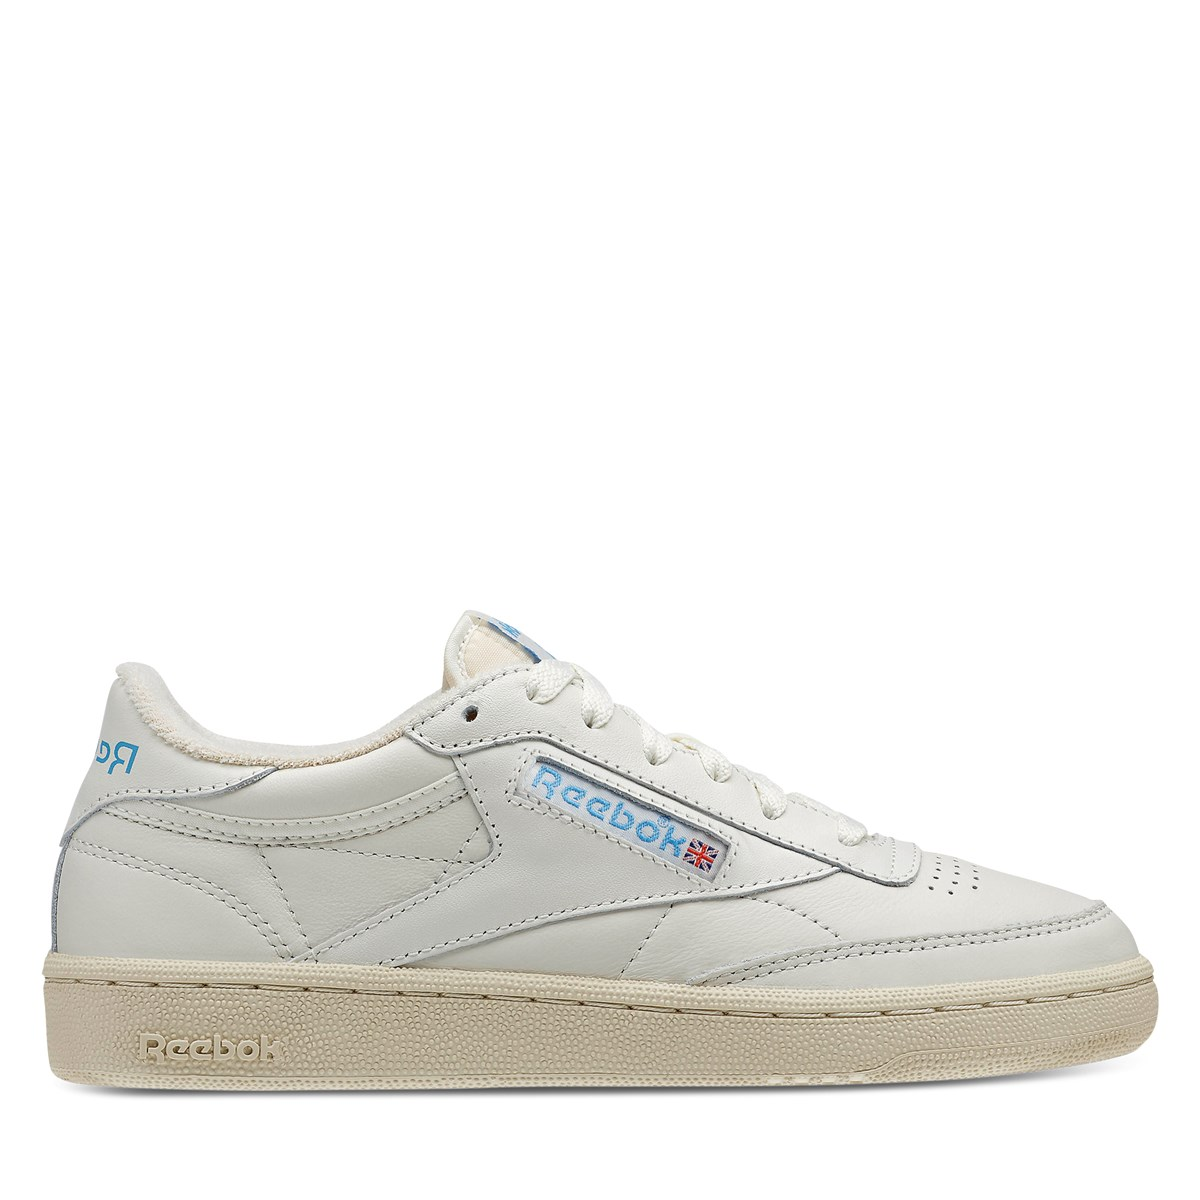 Women's Club C 85 Sneakers in Chalk/Blue